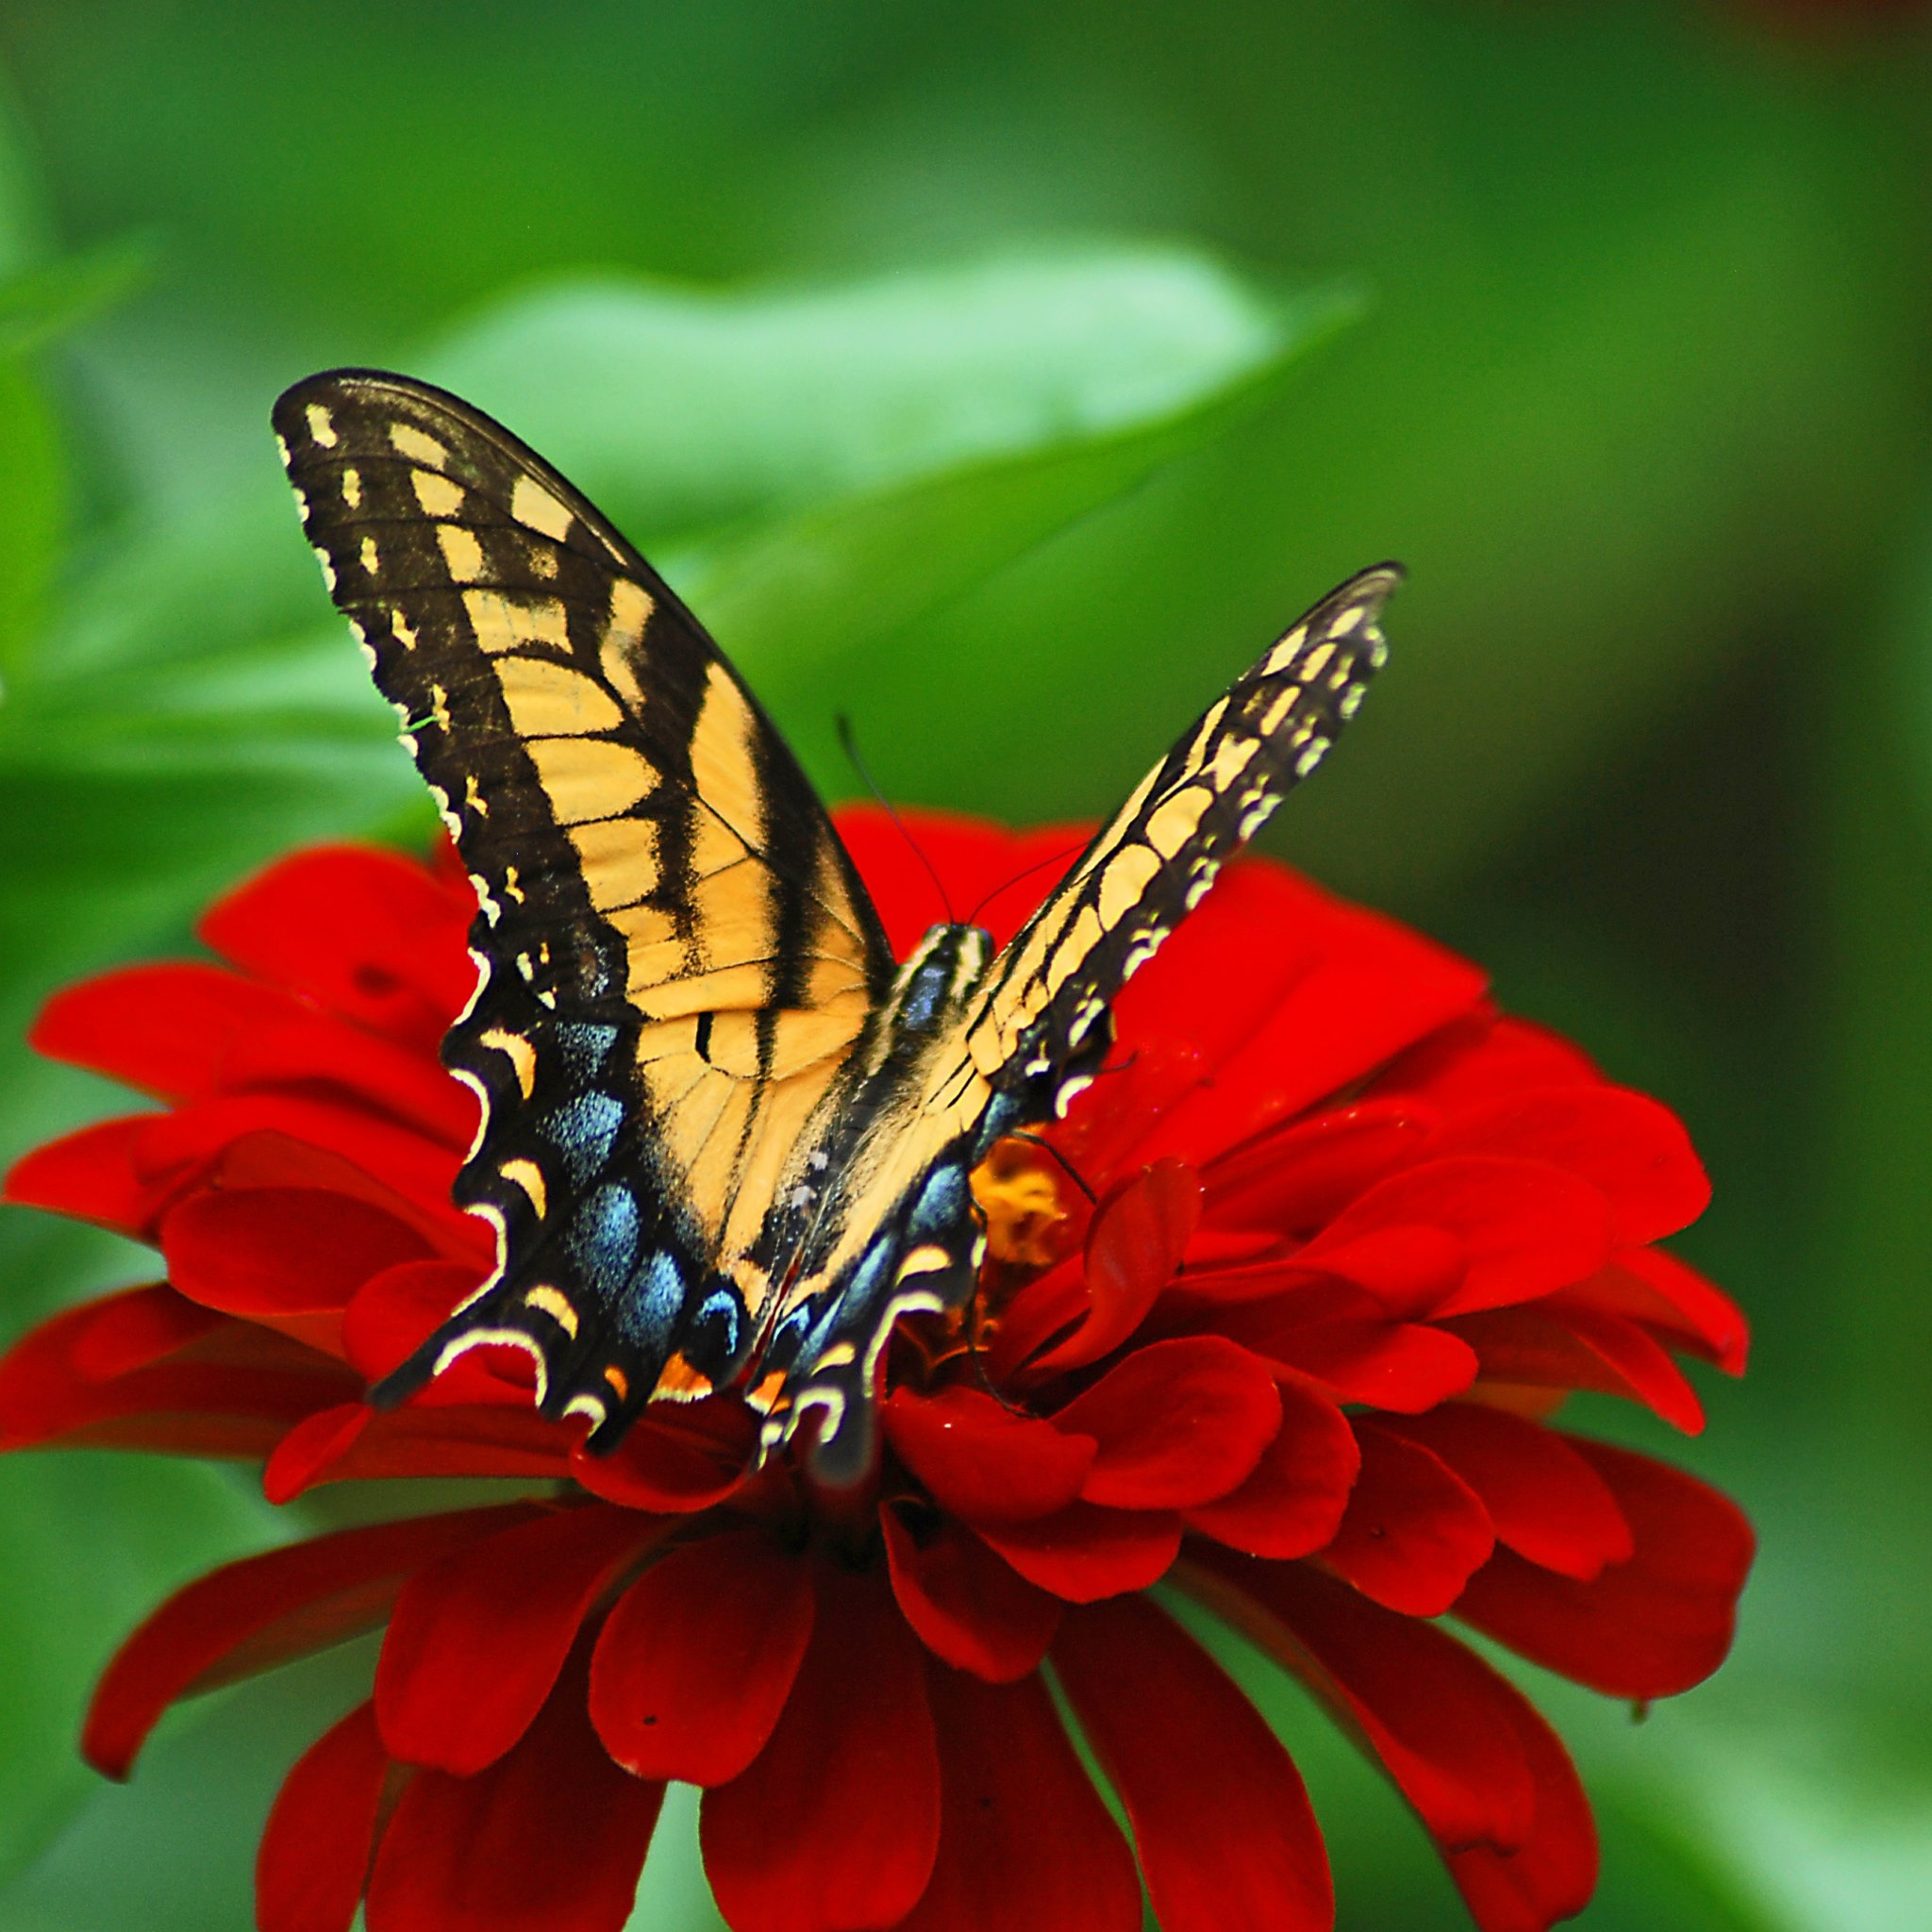 butterfly on the red flower hd wallpapers 4k